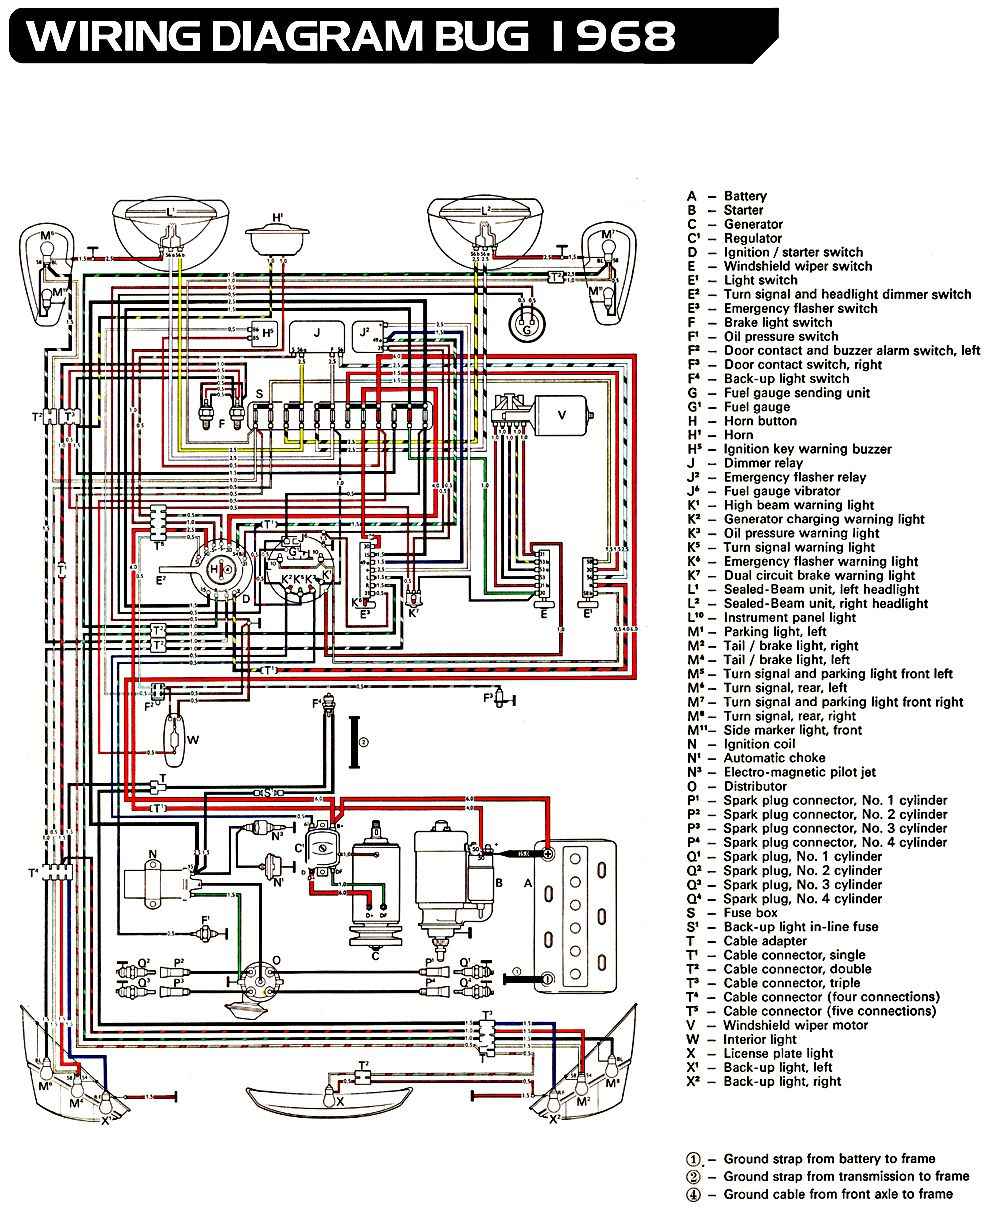 Vw Bug Ignition Wiring Diagram - 73 vw wiring diagram free ... | Vw vocho,  Volkswagen escarabajo, Vochos clasicosPinterest